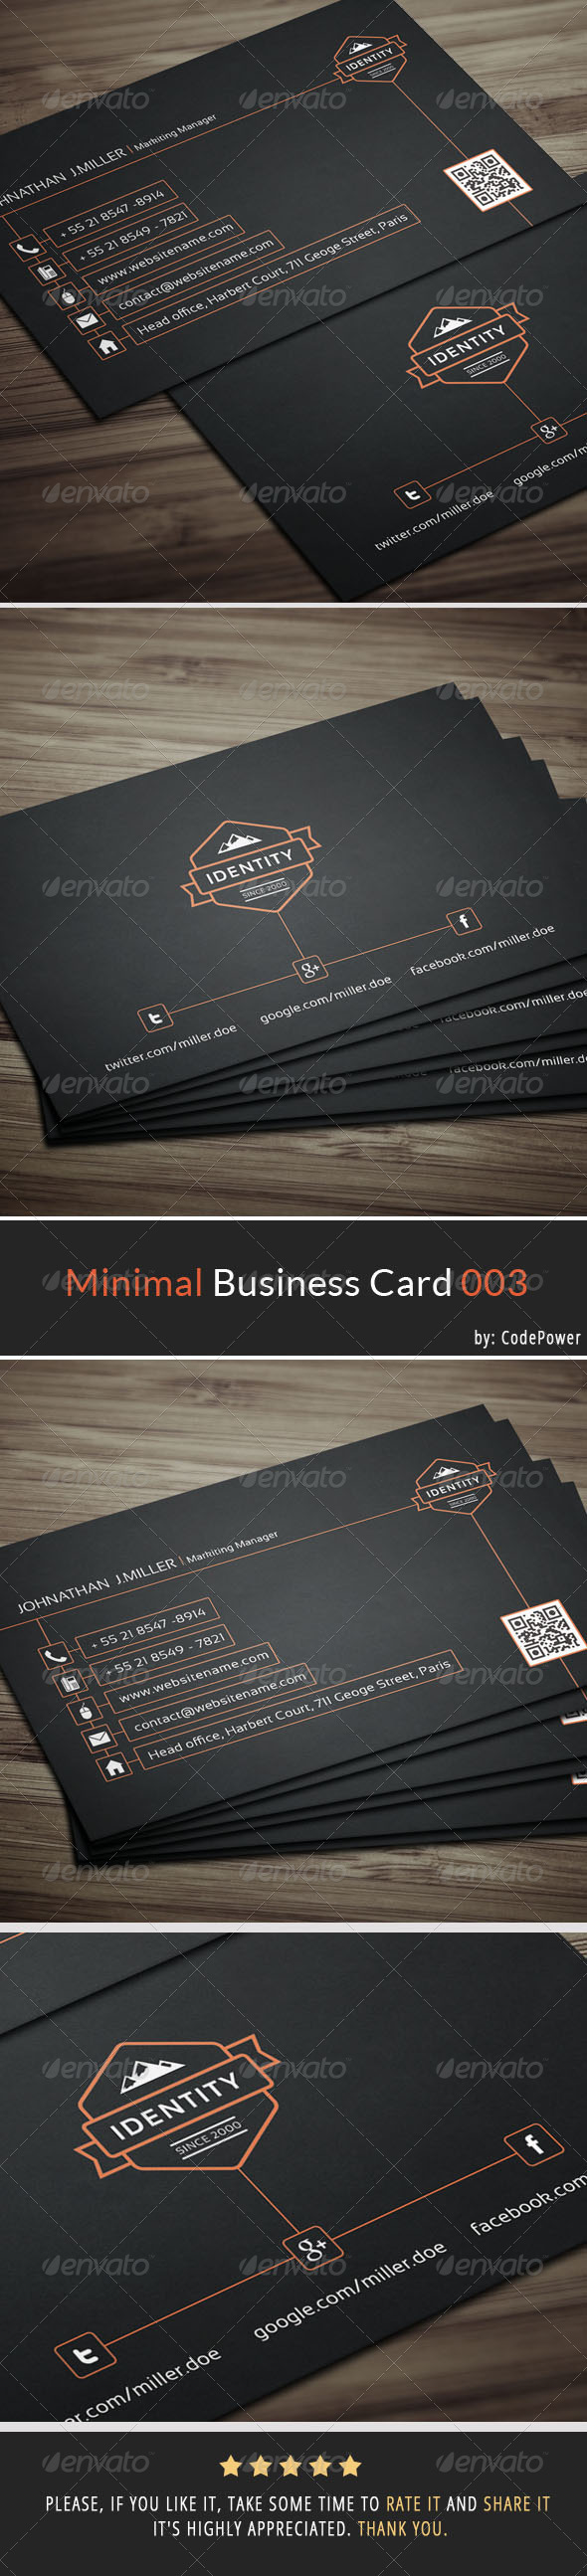 Minimal Business Card 003 - Corporate Business Cards